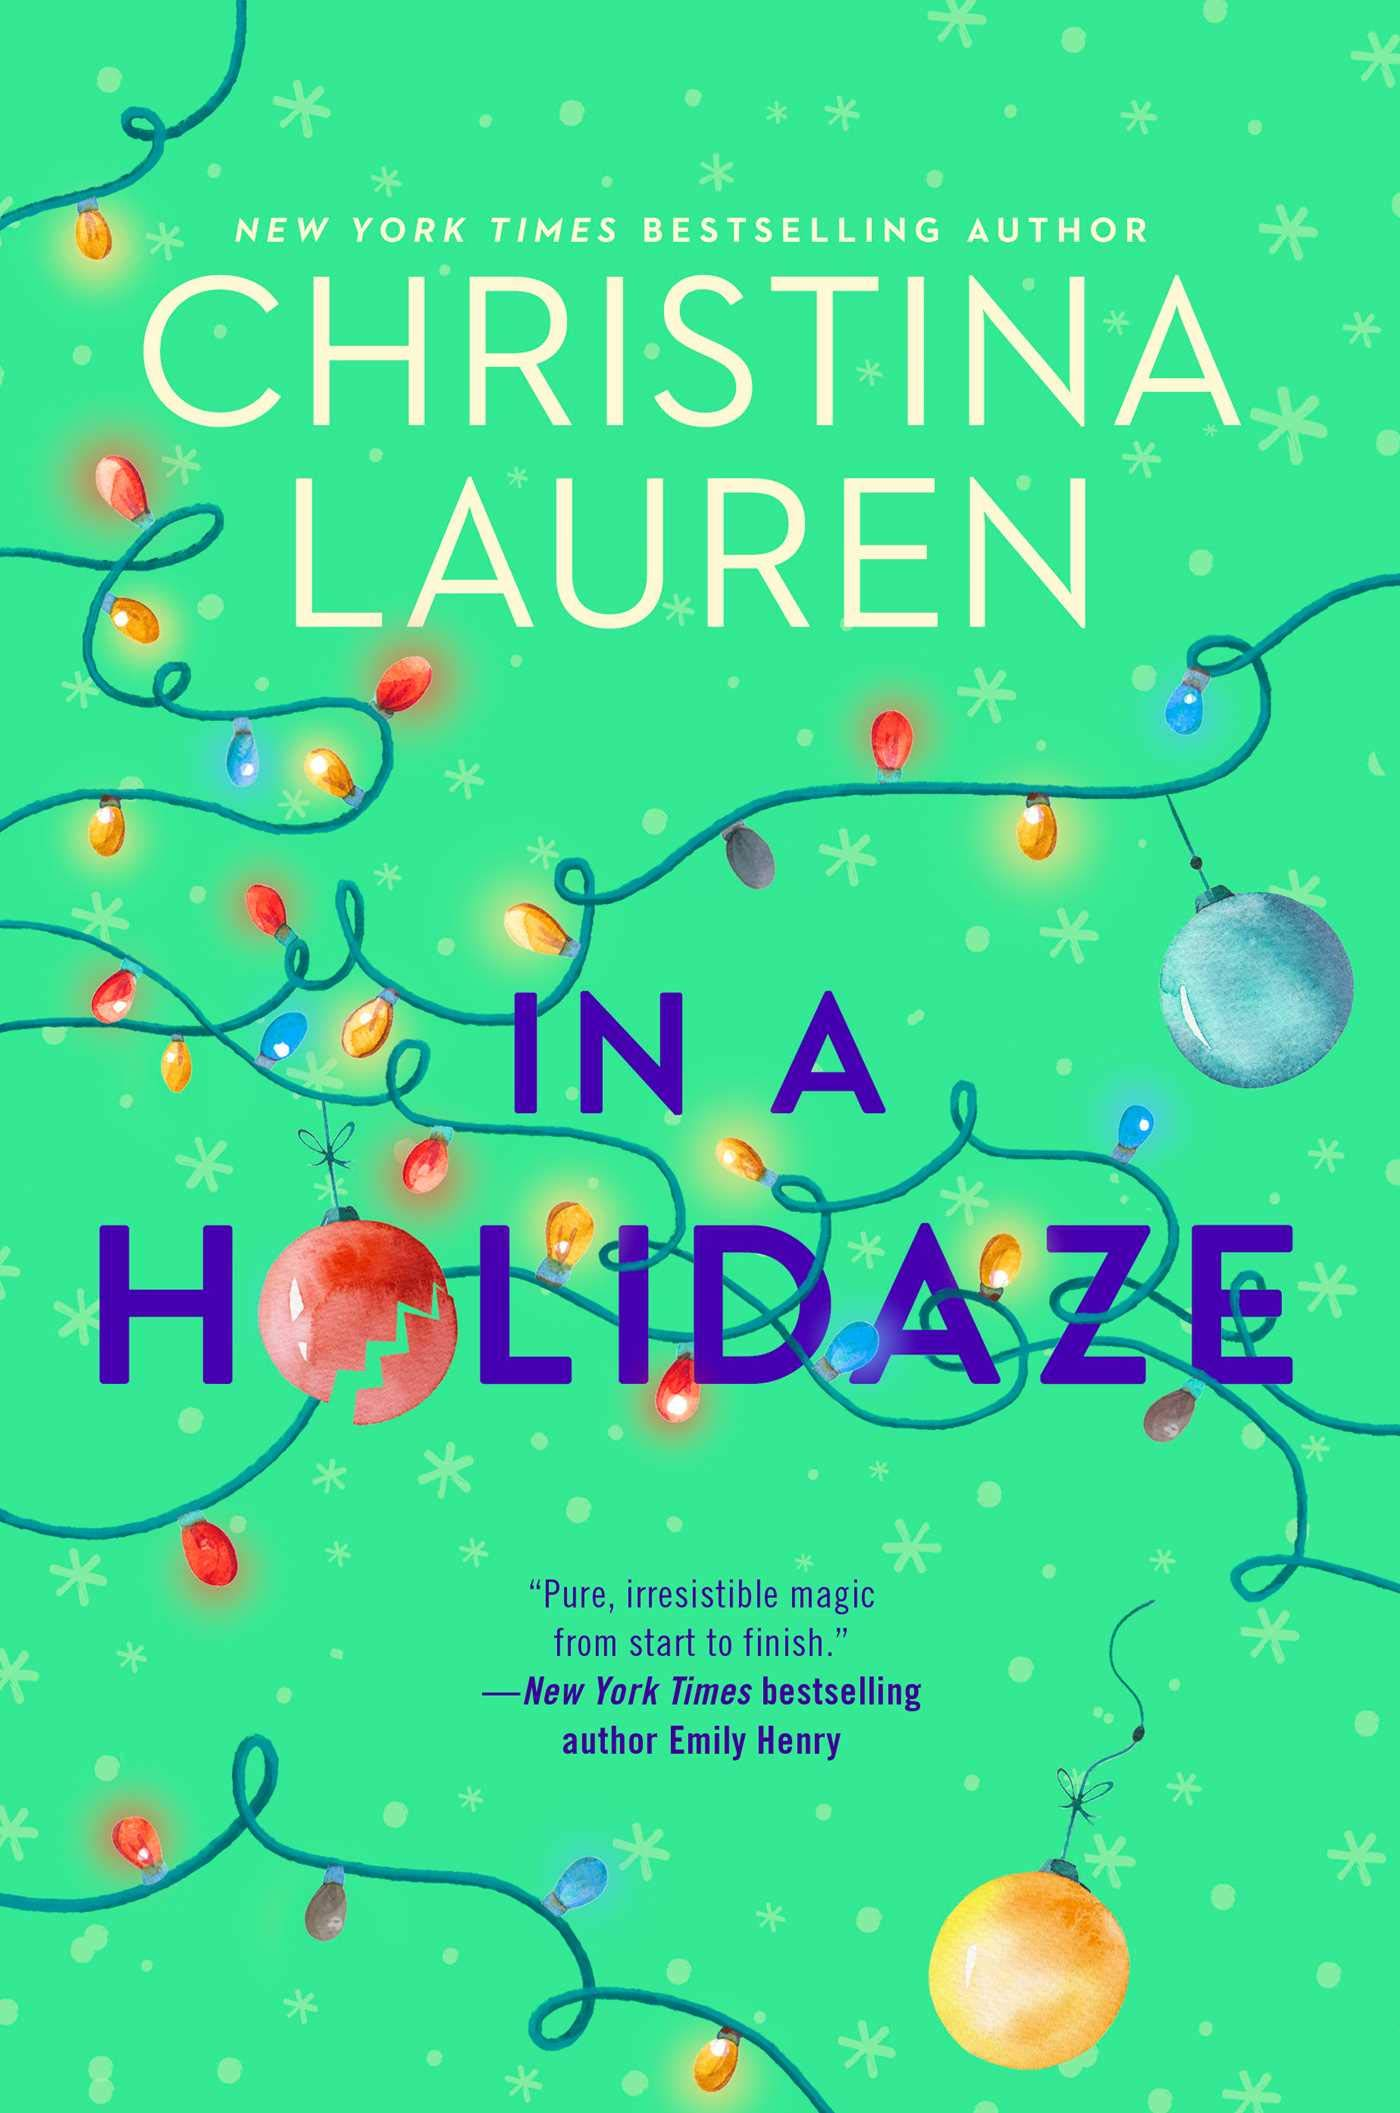 Amazon.com: In a Holidaze (9781982163631): Lauren, Christina: Books